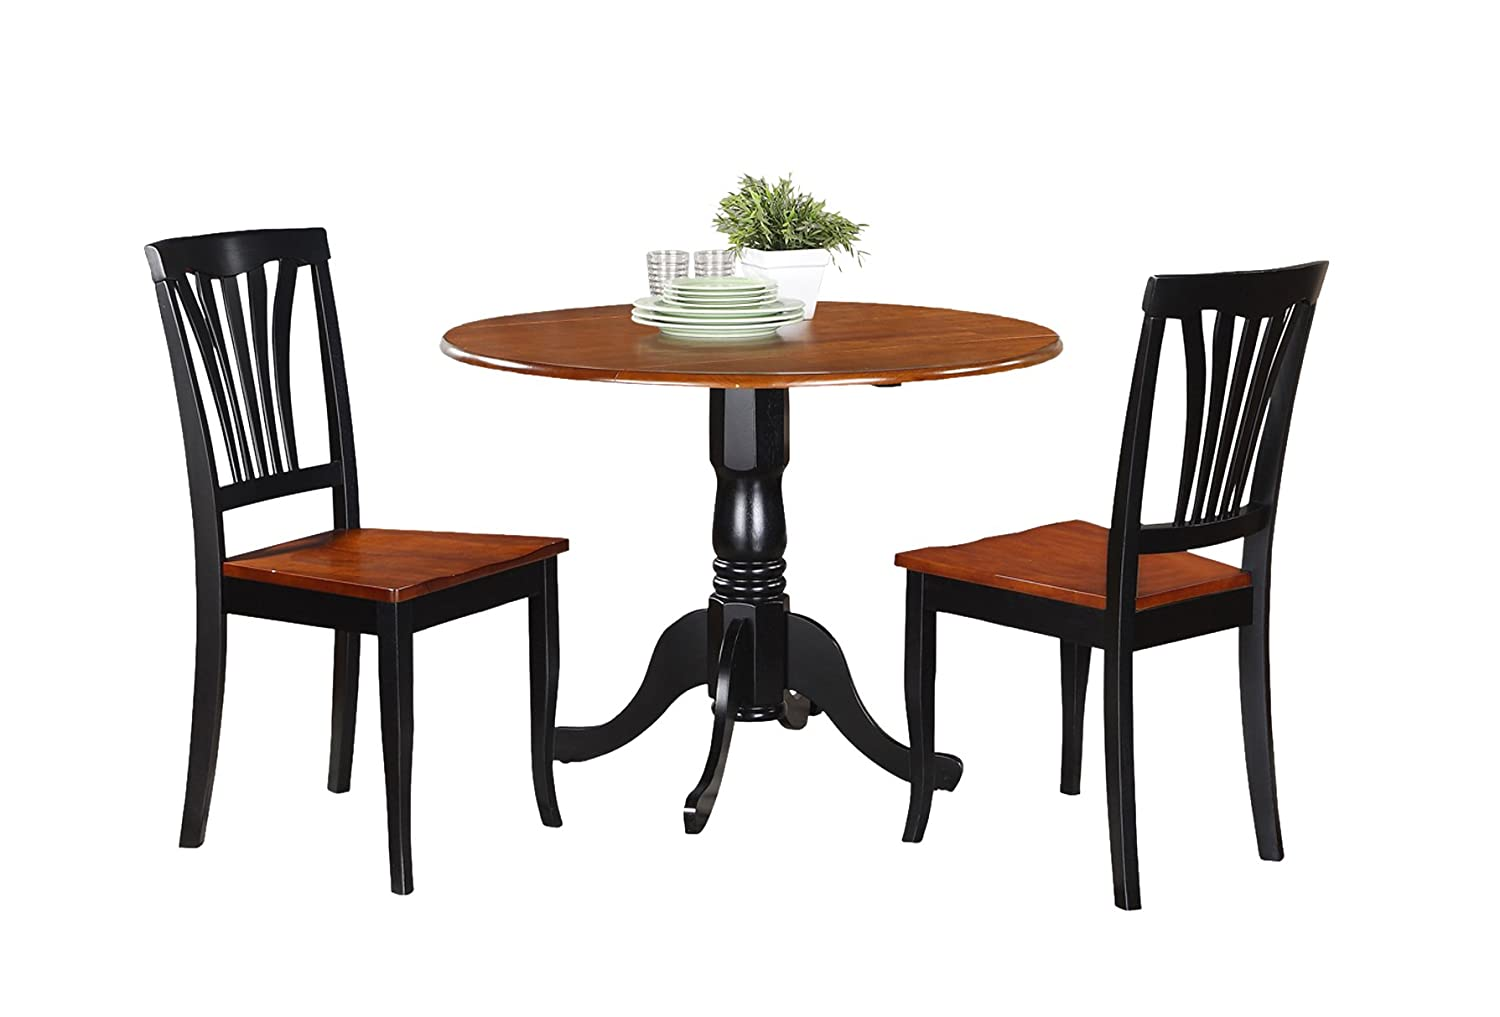 East West Furniture DLAV3-BCH-W 3 Pc Kitchen Nook Dining Set-Kitchen Table and 2 Kitchen Chairs